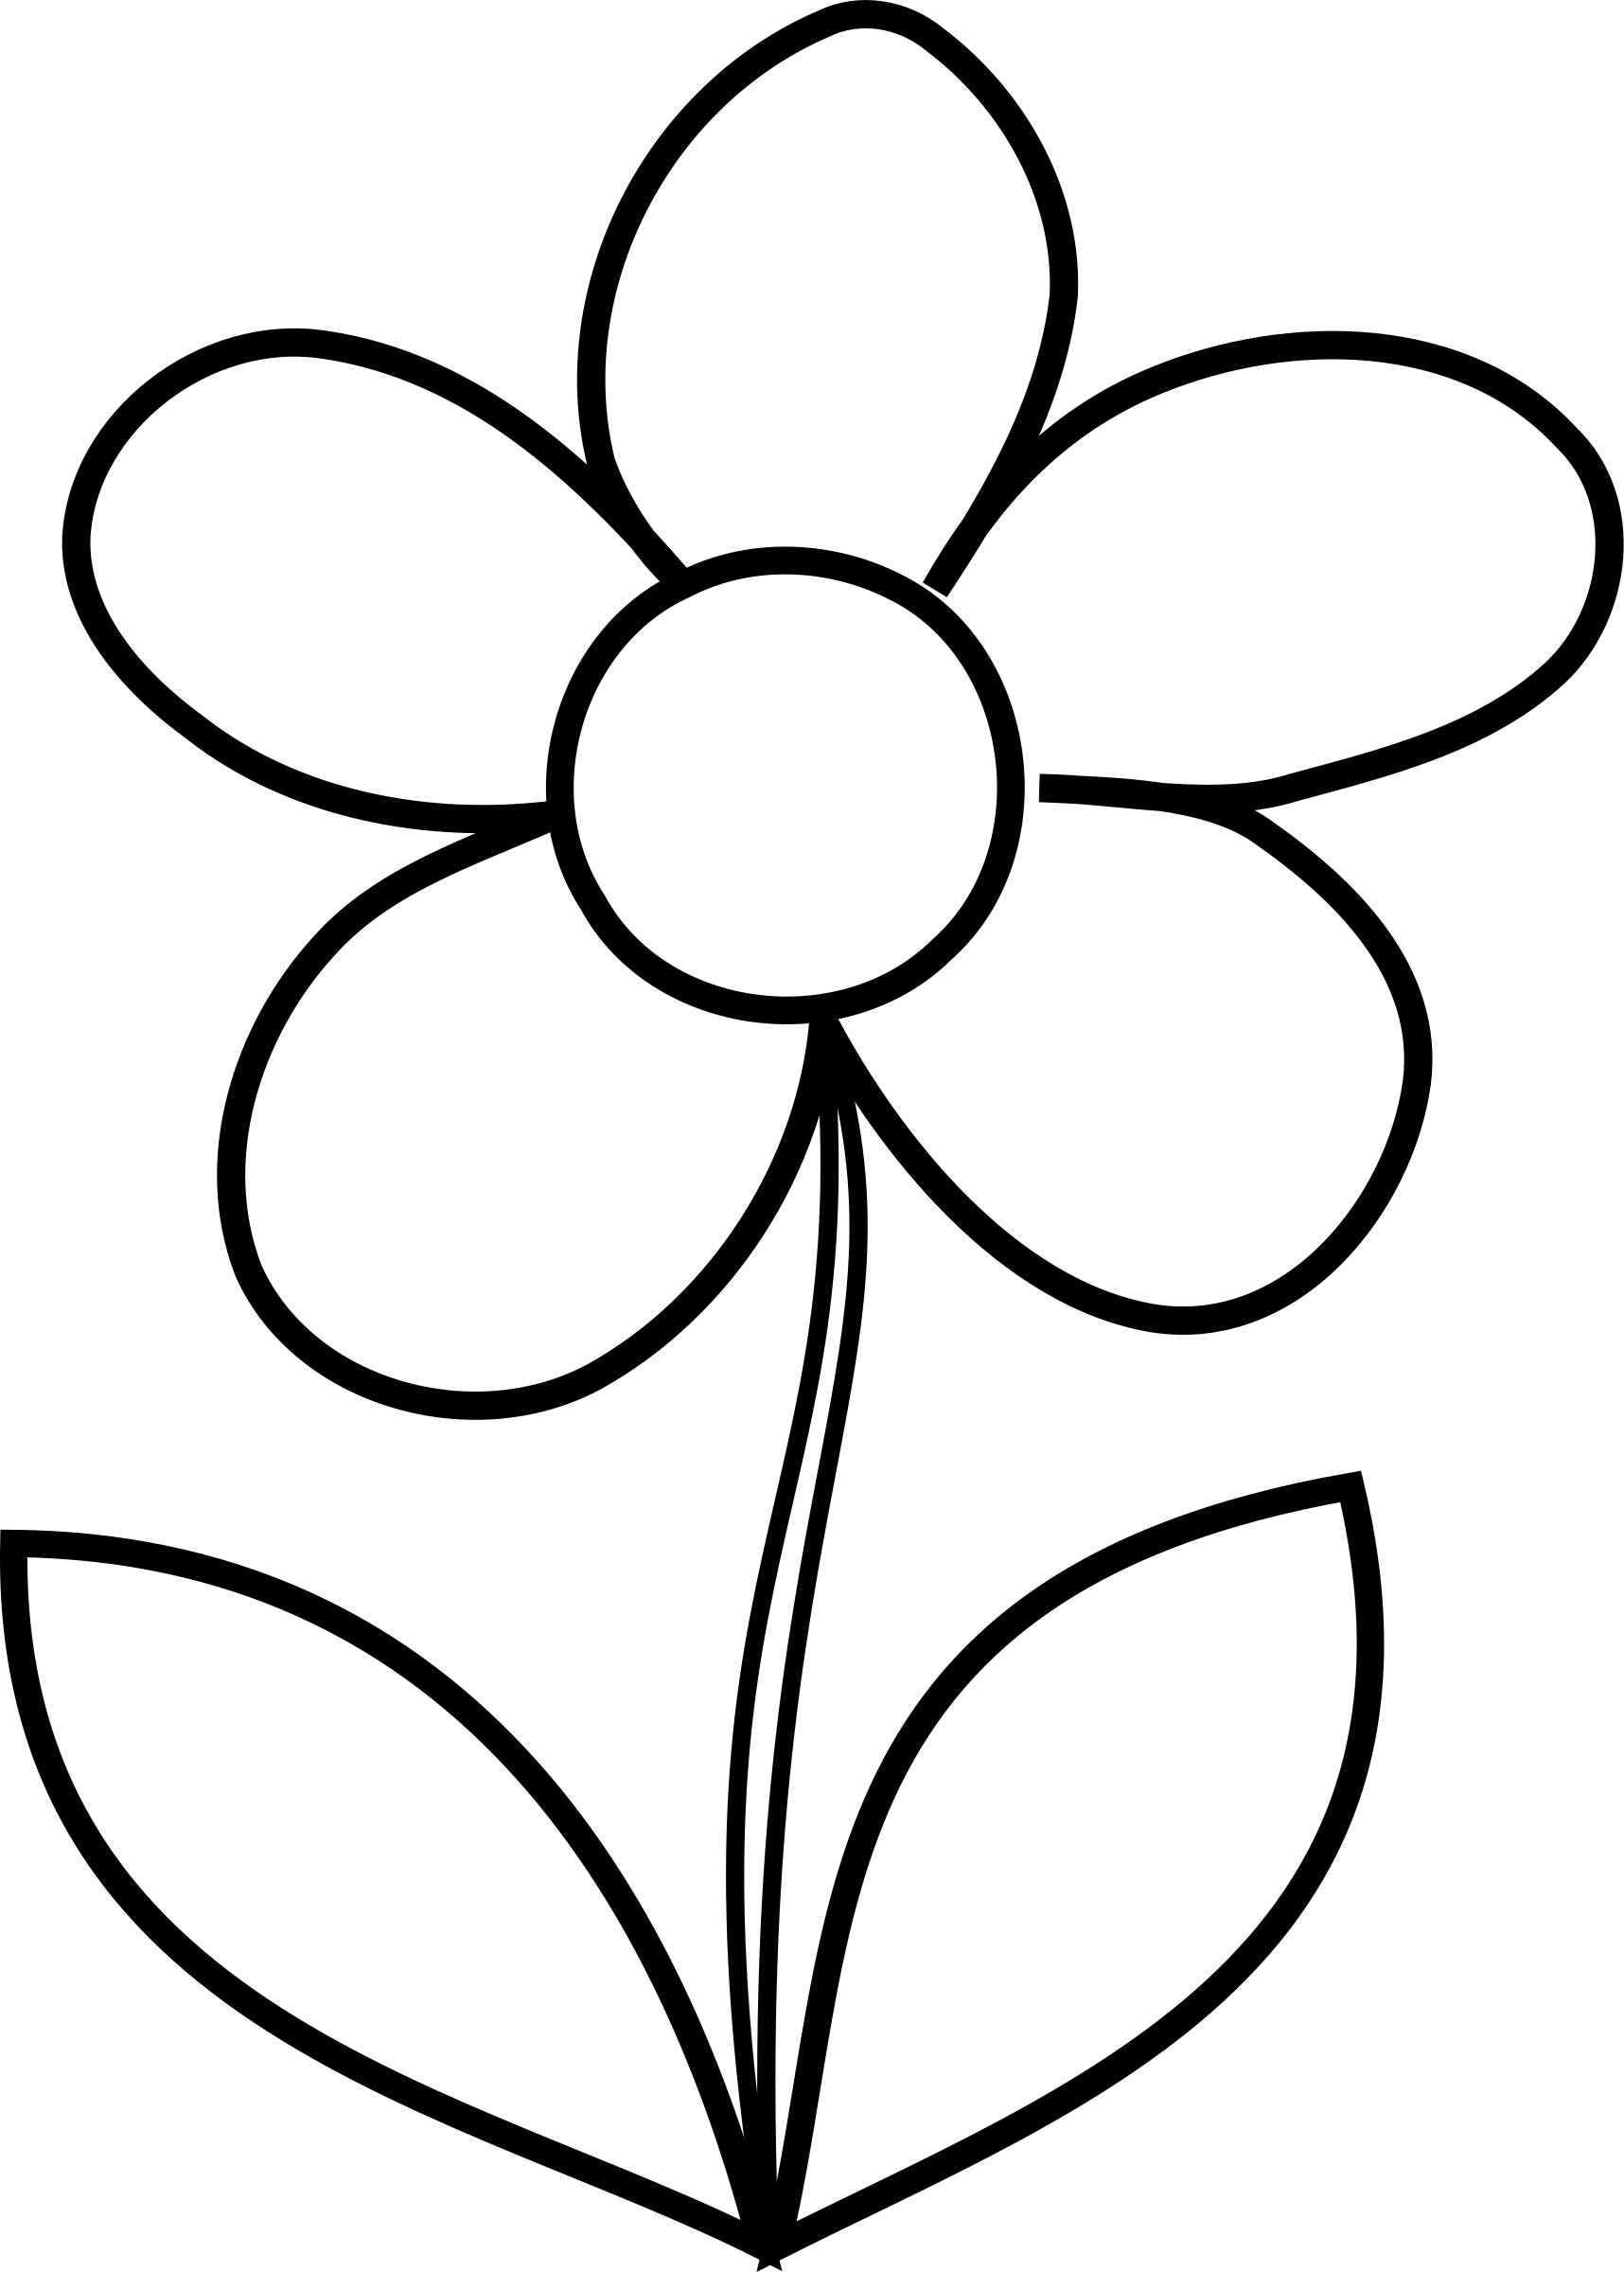 colouring pictures of flowers free printable flower coloring pages for kids best colouring pictures of flowers 1 1